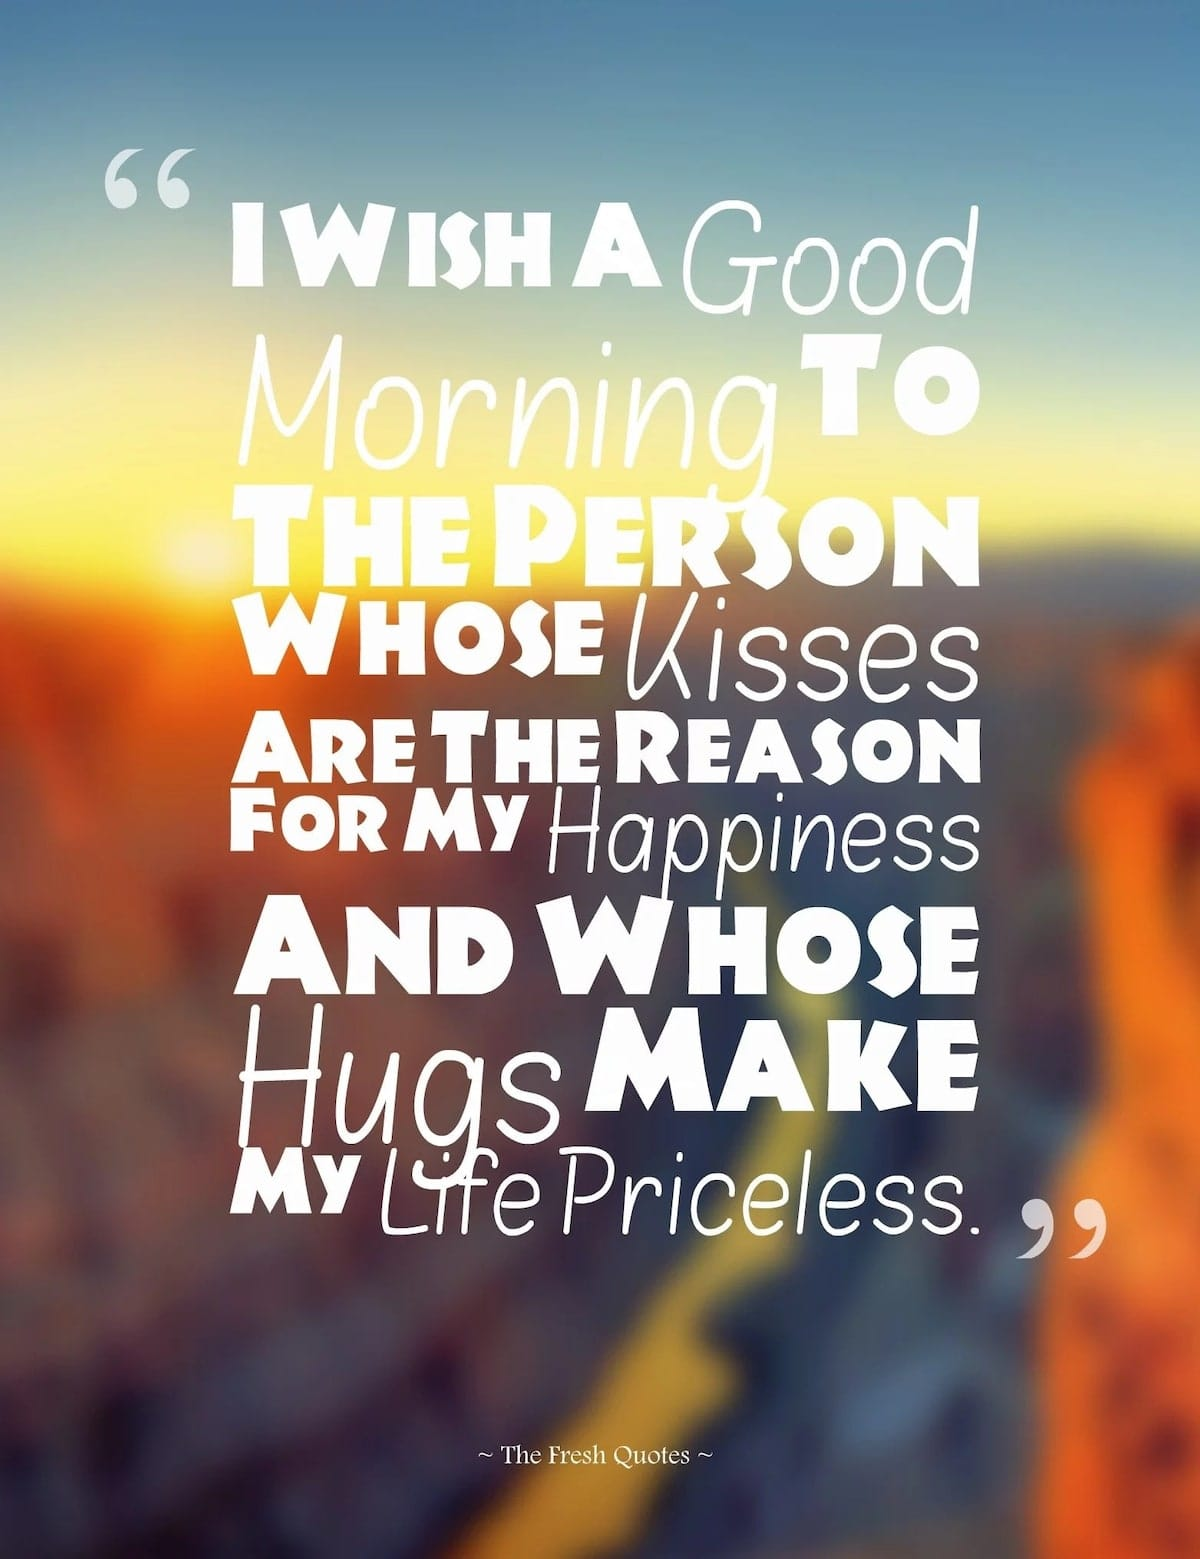 Inspirational Good Morning Love Quotes For Her And Him Yen